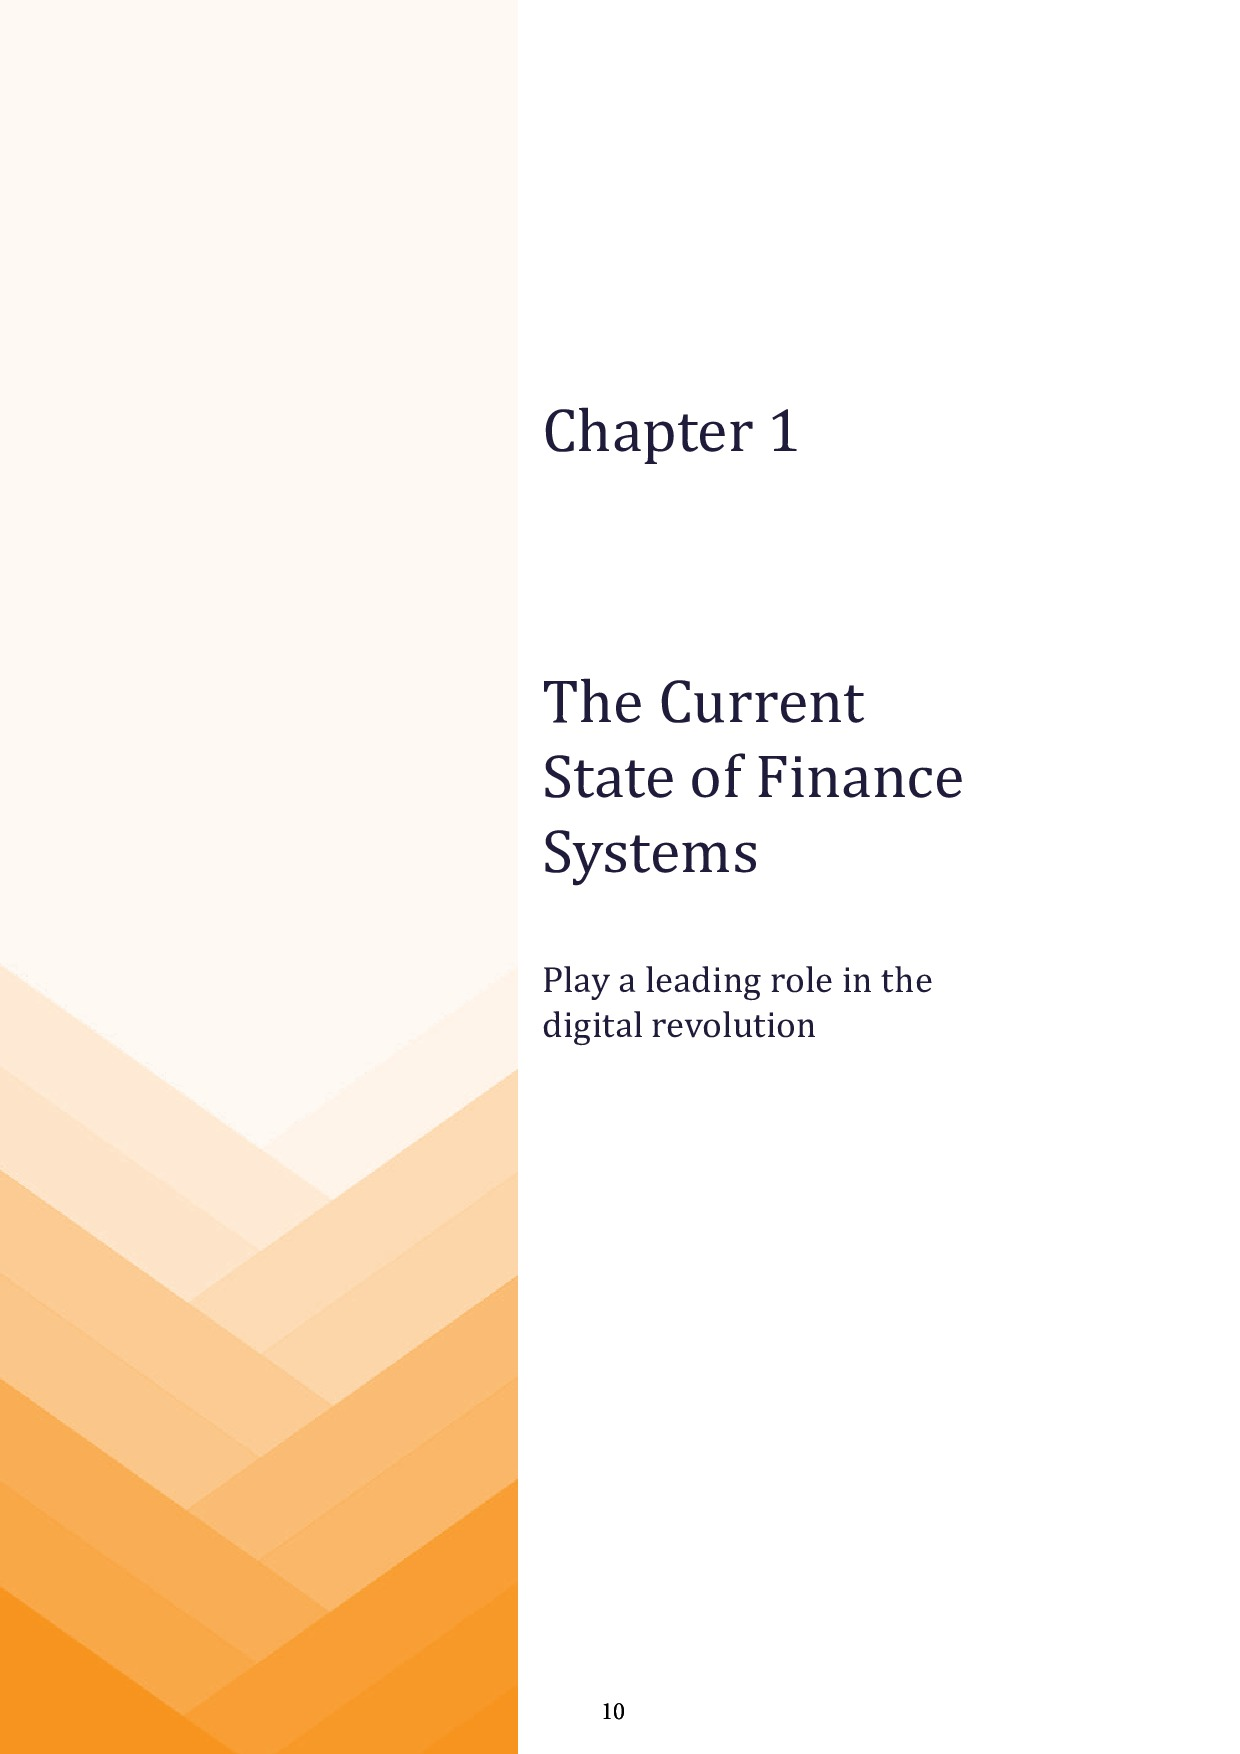 FSN - The Future of Finance Systems | Page 10